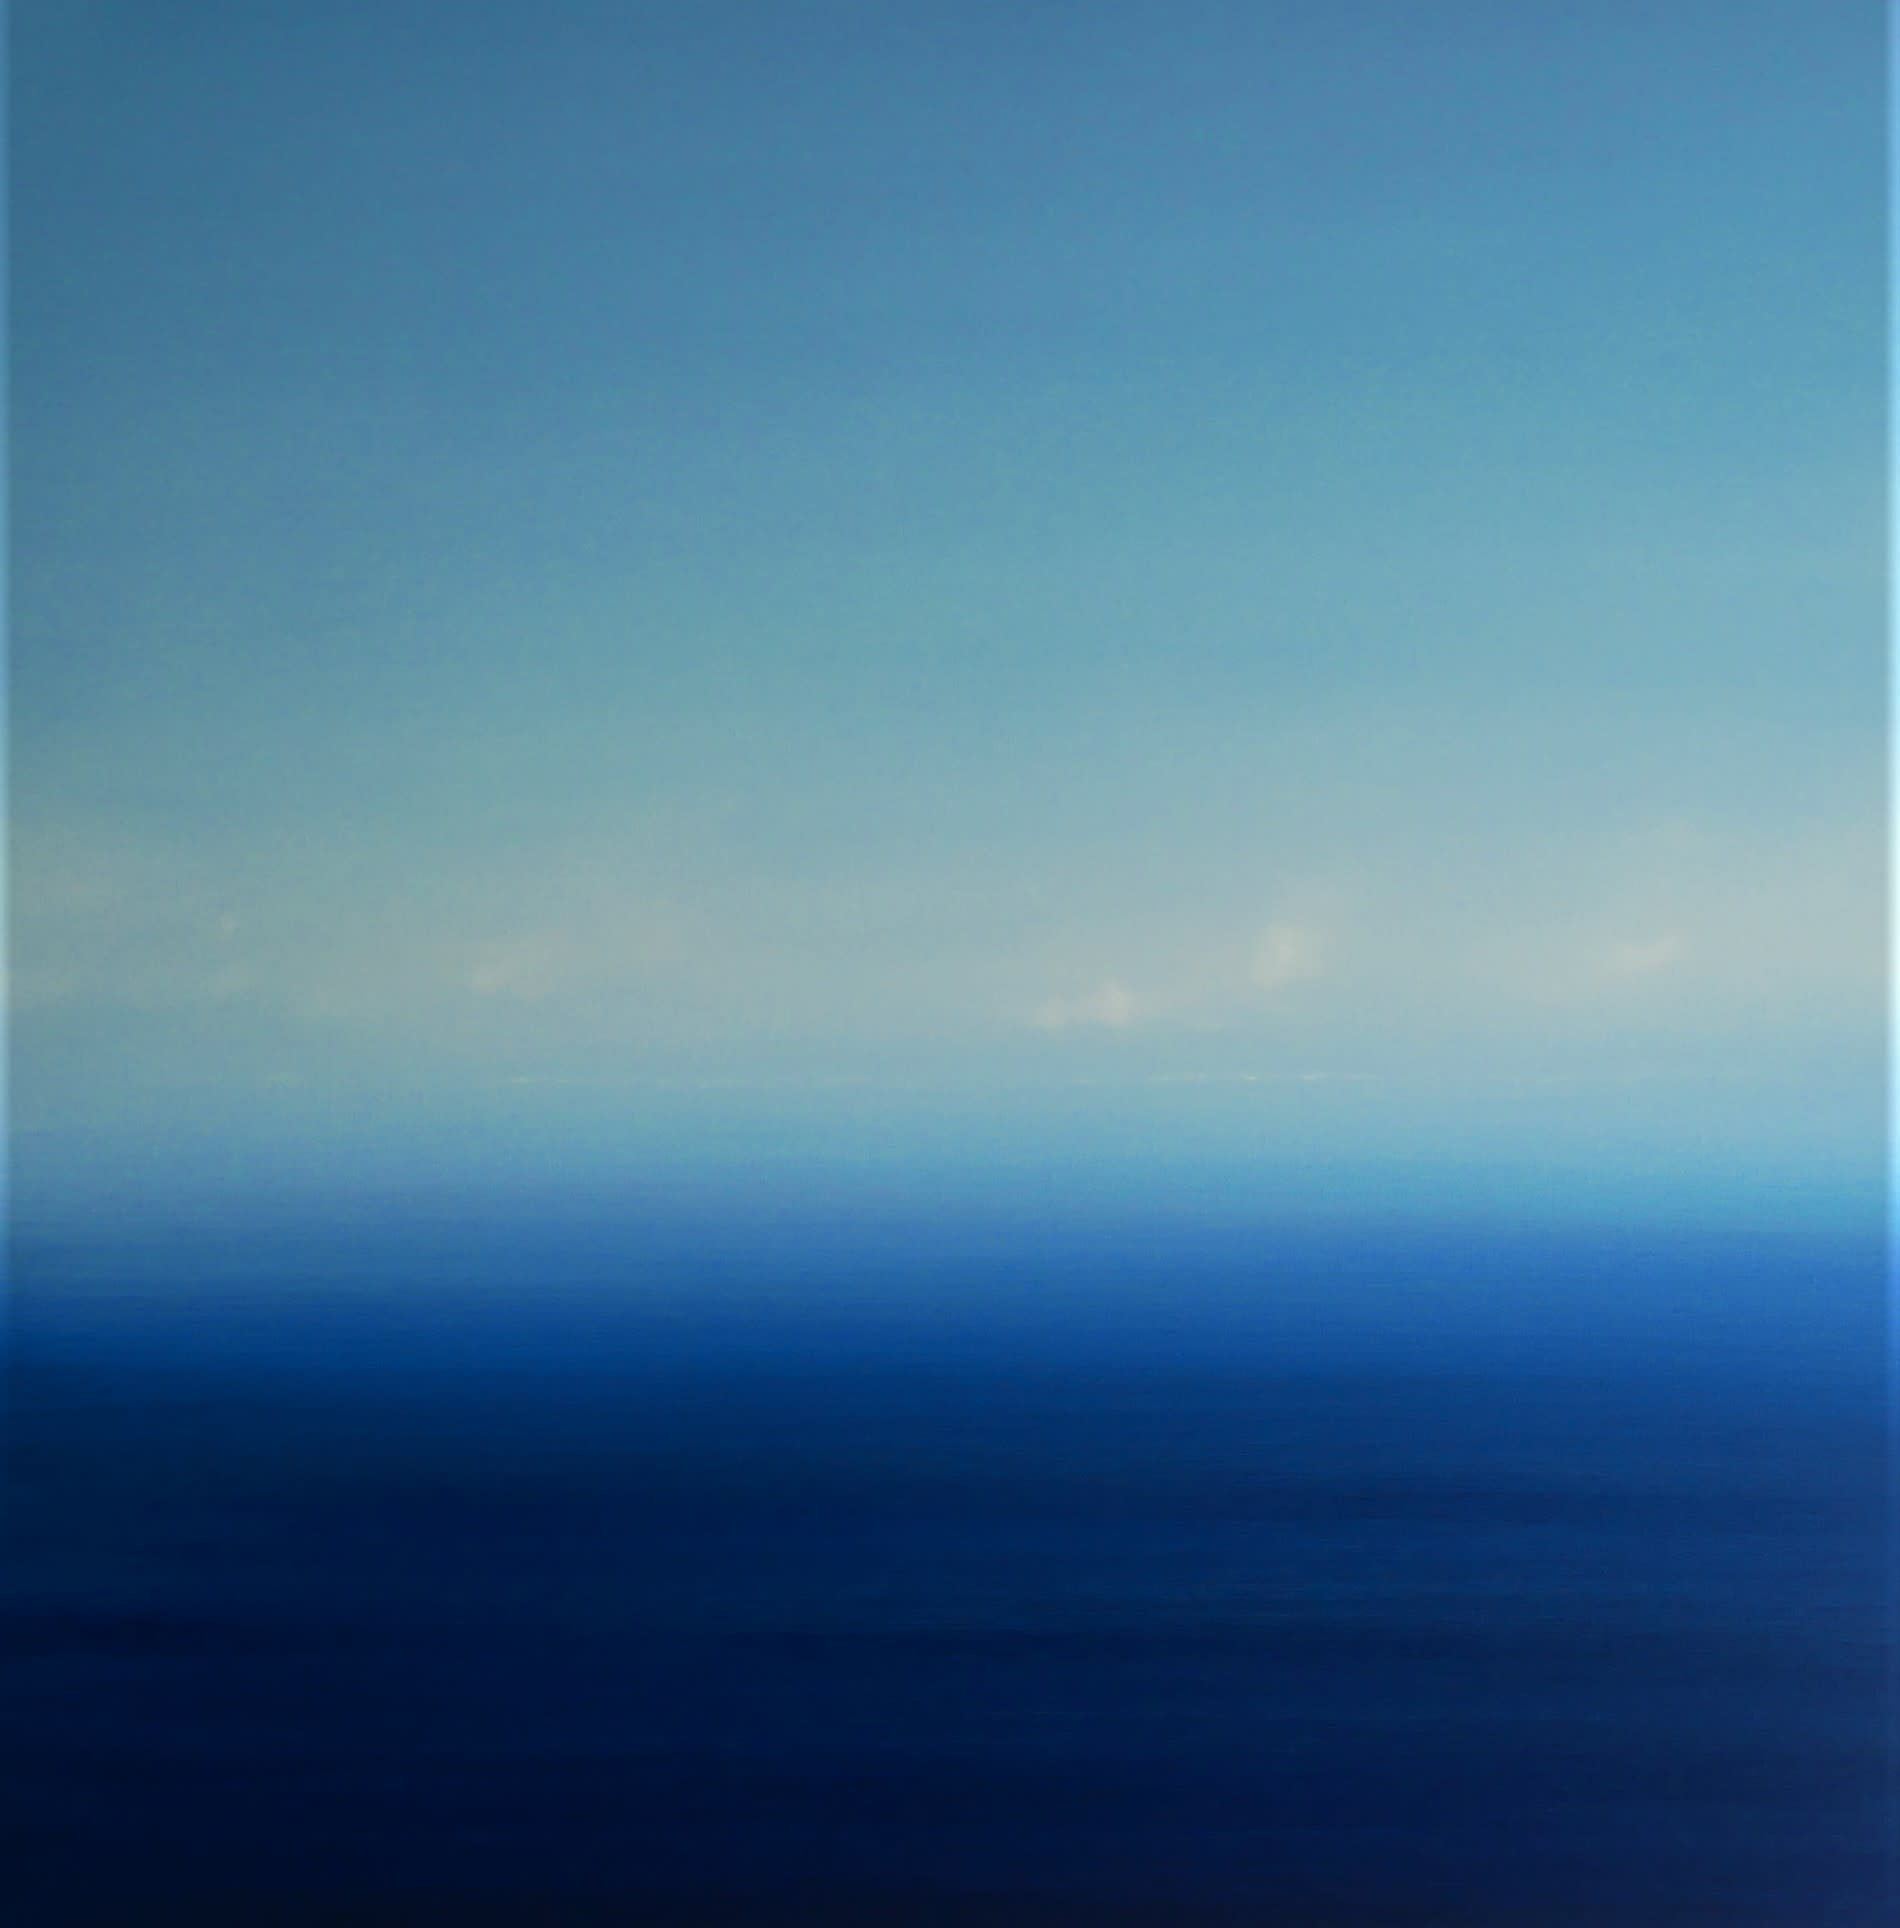 "<span class=""link fancybox-details-link""><a href=""/artists/78-martyn-perryman/works/7146-martyn-perryman-blue-tranquility-st-ives-bay-1-2020/"">View Detail Page</a></span><div class=""artist""><strong>Martyn Perryman</strong></div> <div class=""title""><em>Blue Tranquility St Ives Bay 1</em>, 2020</div> <div class=""medium"">oil on canvas</div> <div class=""dimensions"">h. 80 x w. 80 cm </div><div class=""copyright_line"">Ownart: £99 x 10 Months, 0% APR</div>"